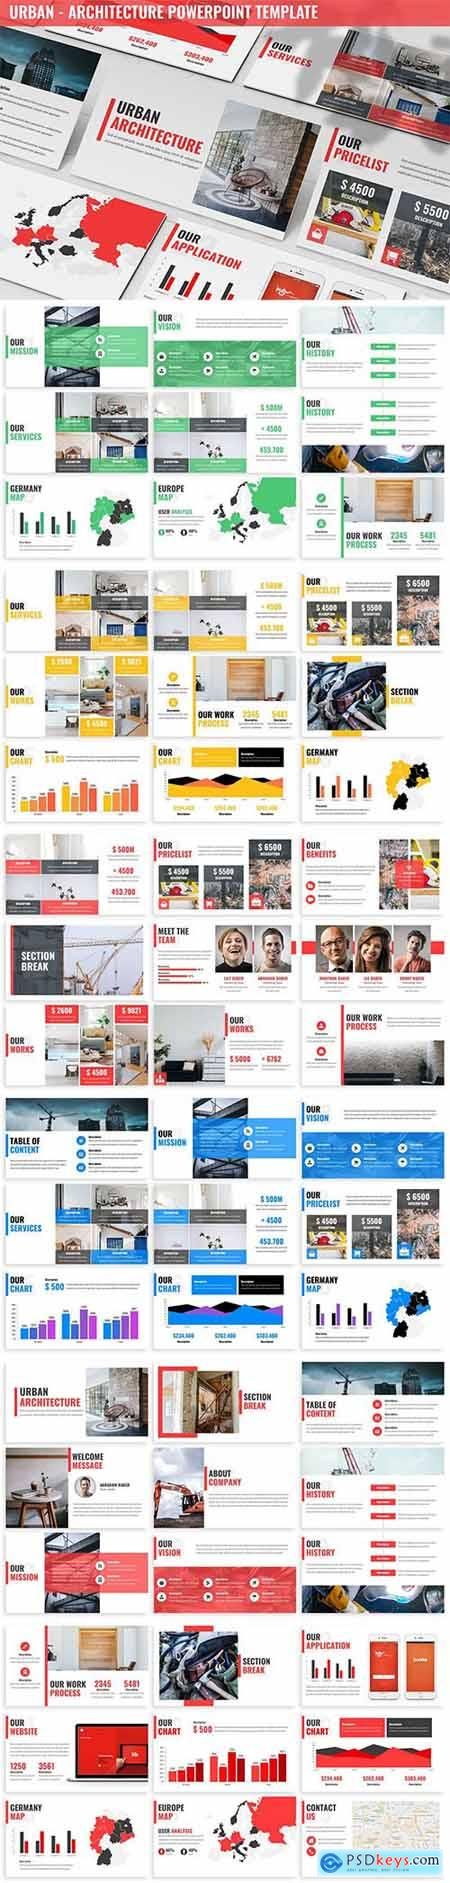 Urban - Architecture Powerpoint Template